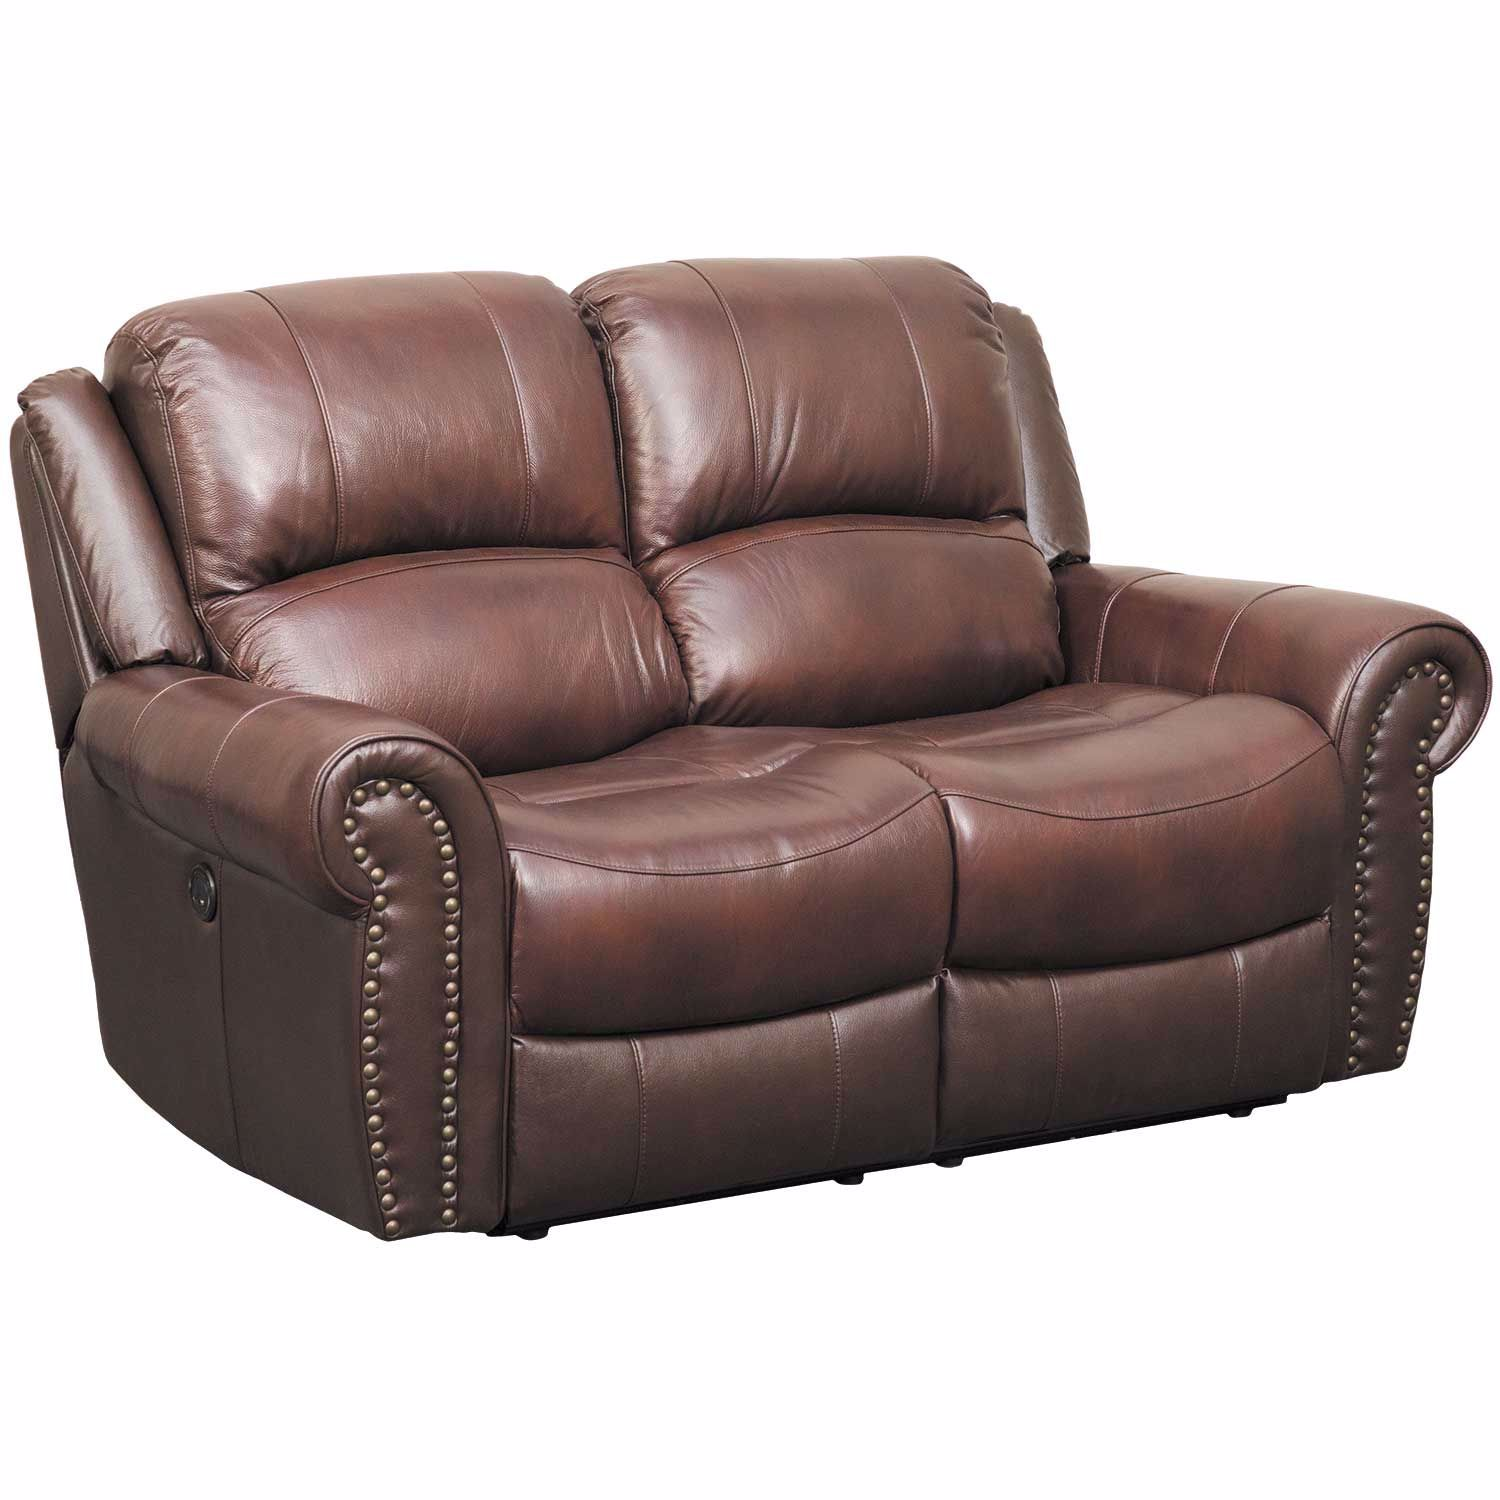 Church Hill Leather Power Reclining Loveseat 7120 52p